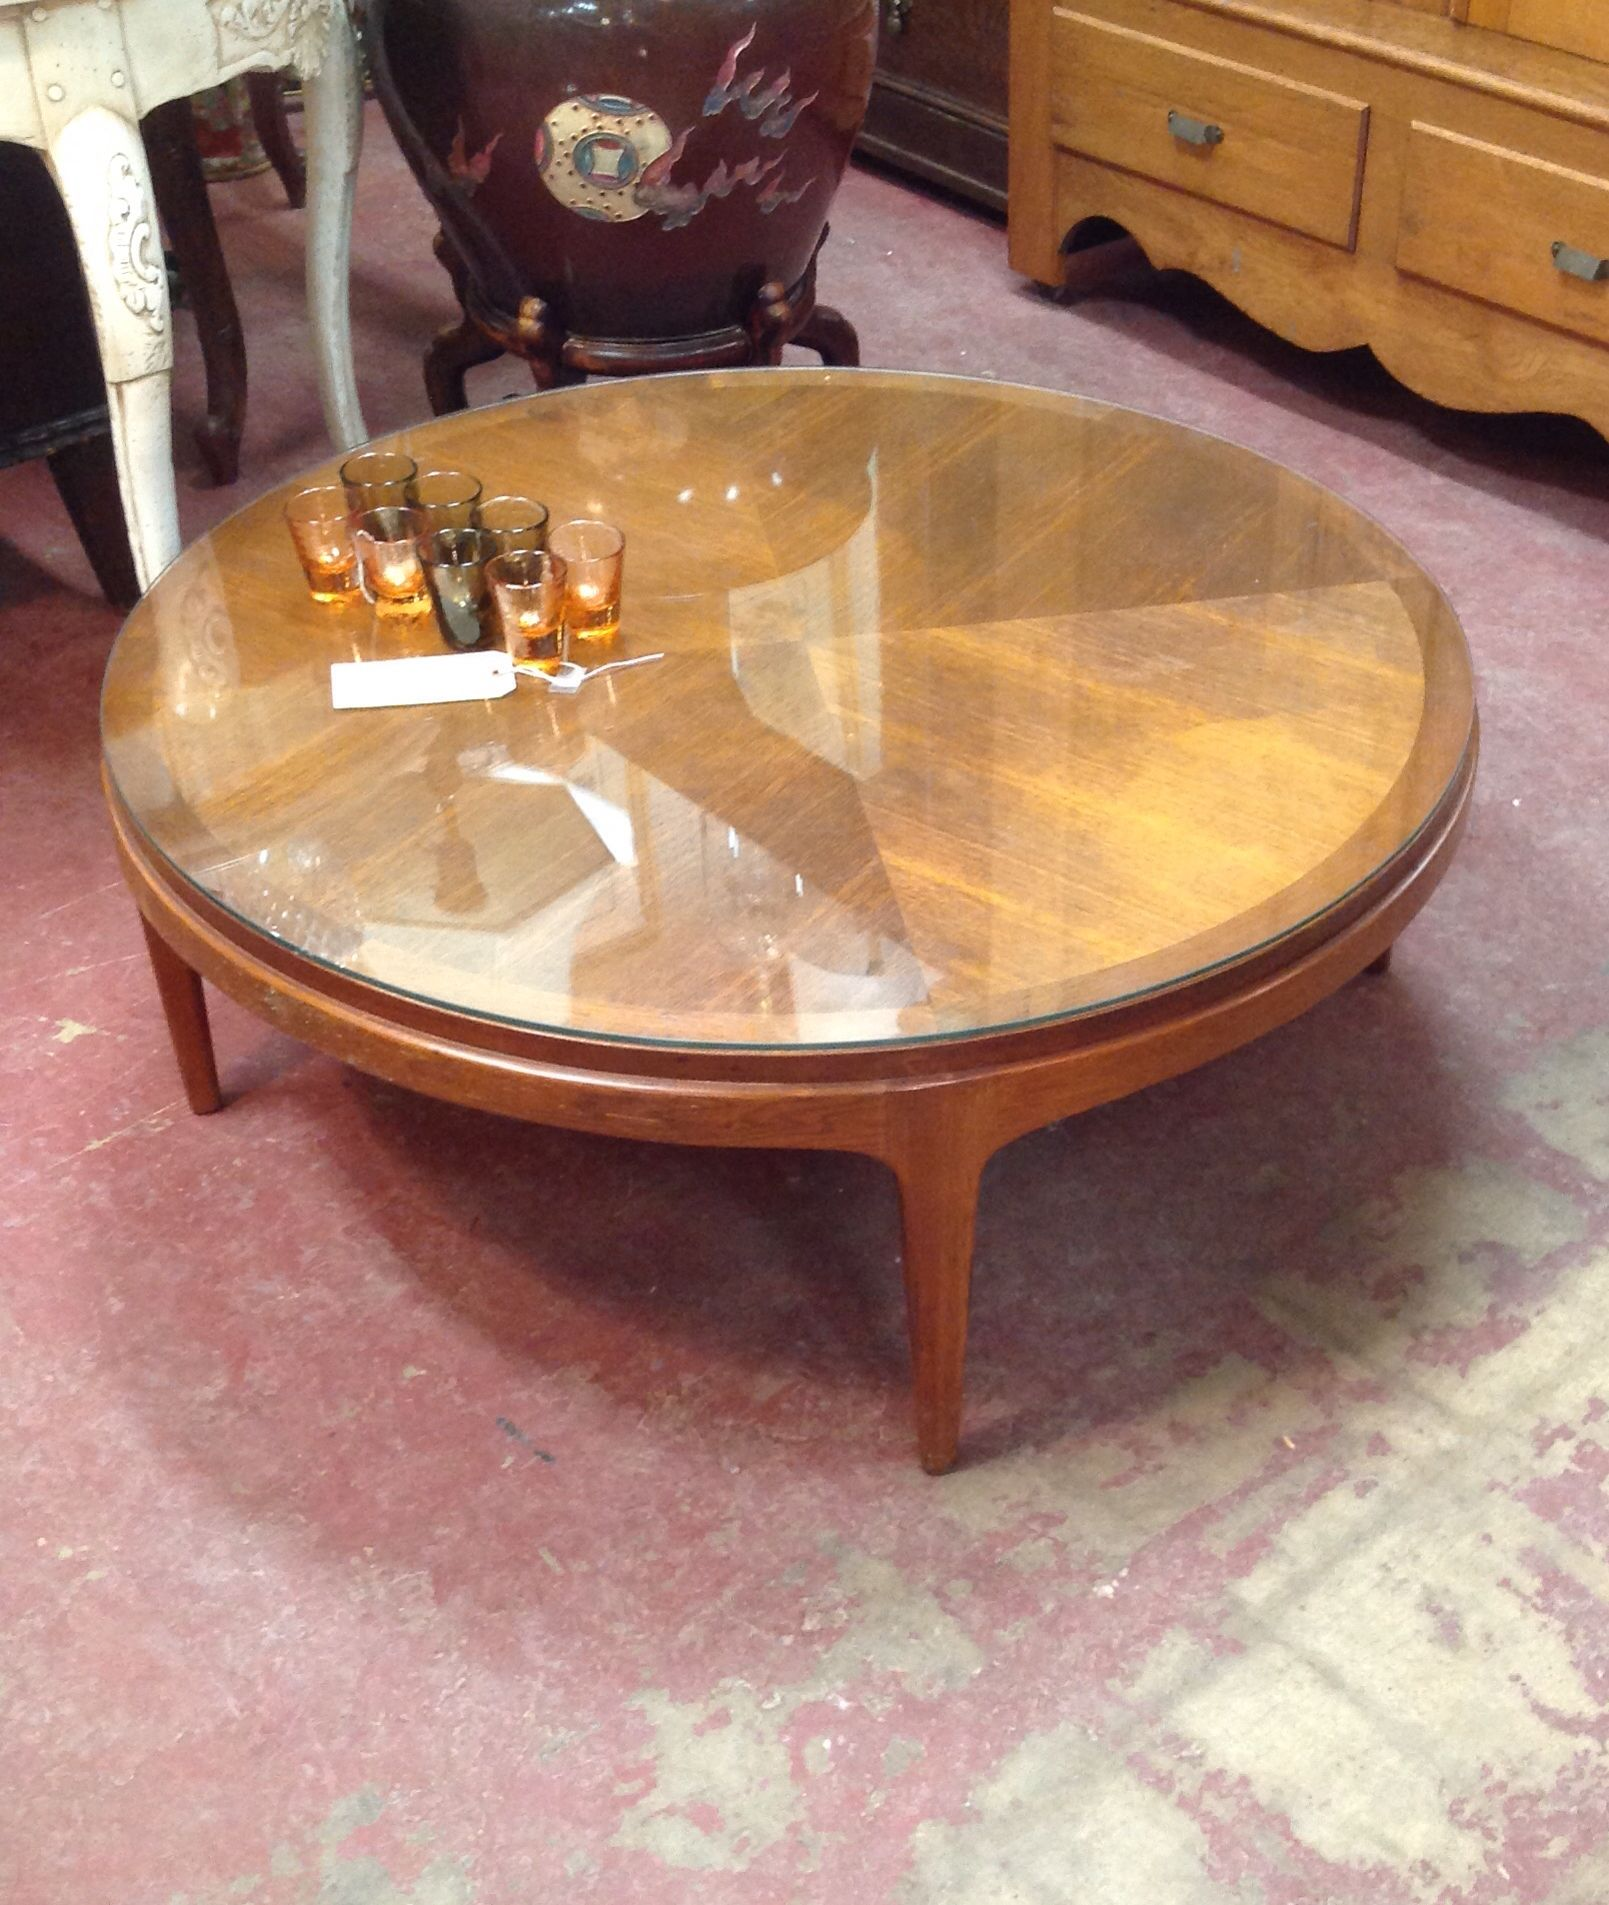 SOLD $295 Vintage mid century modern Lane round coffee table